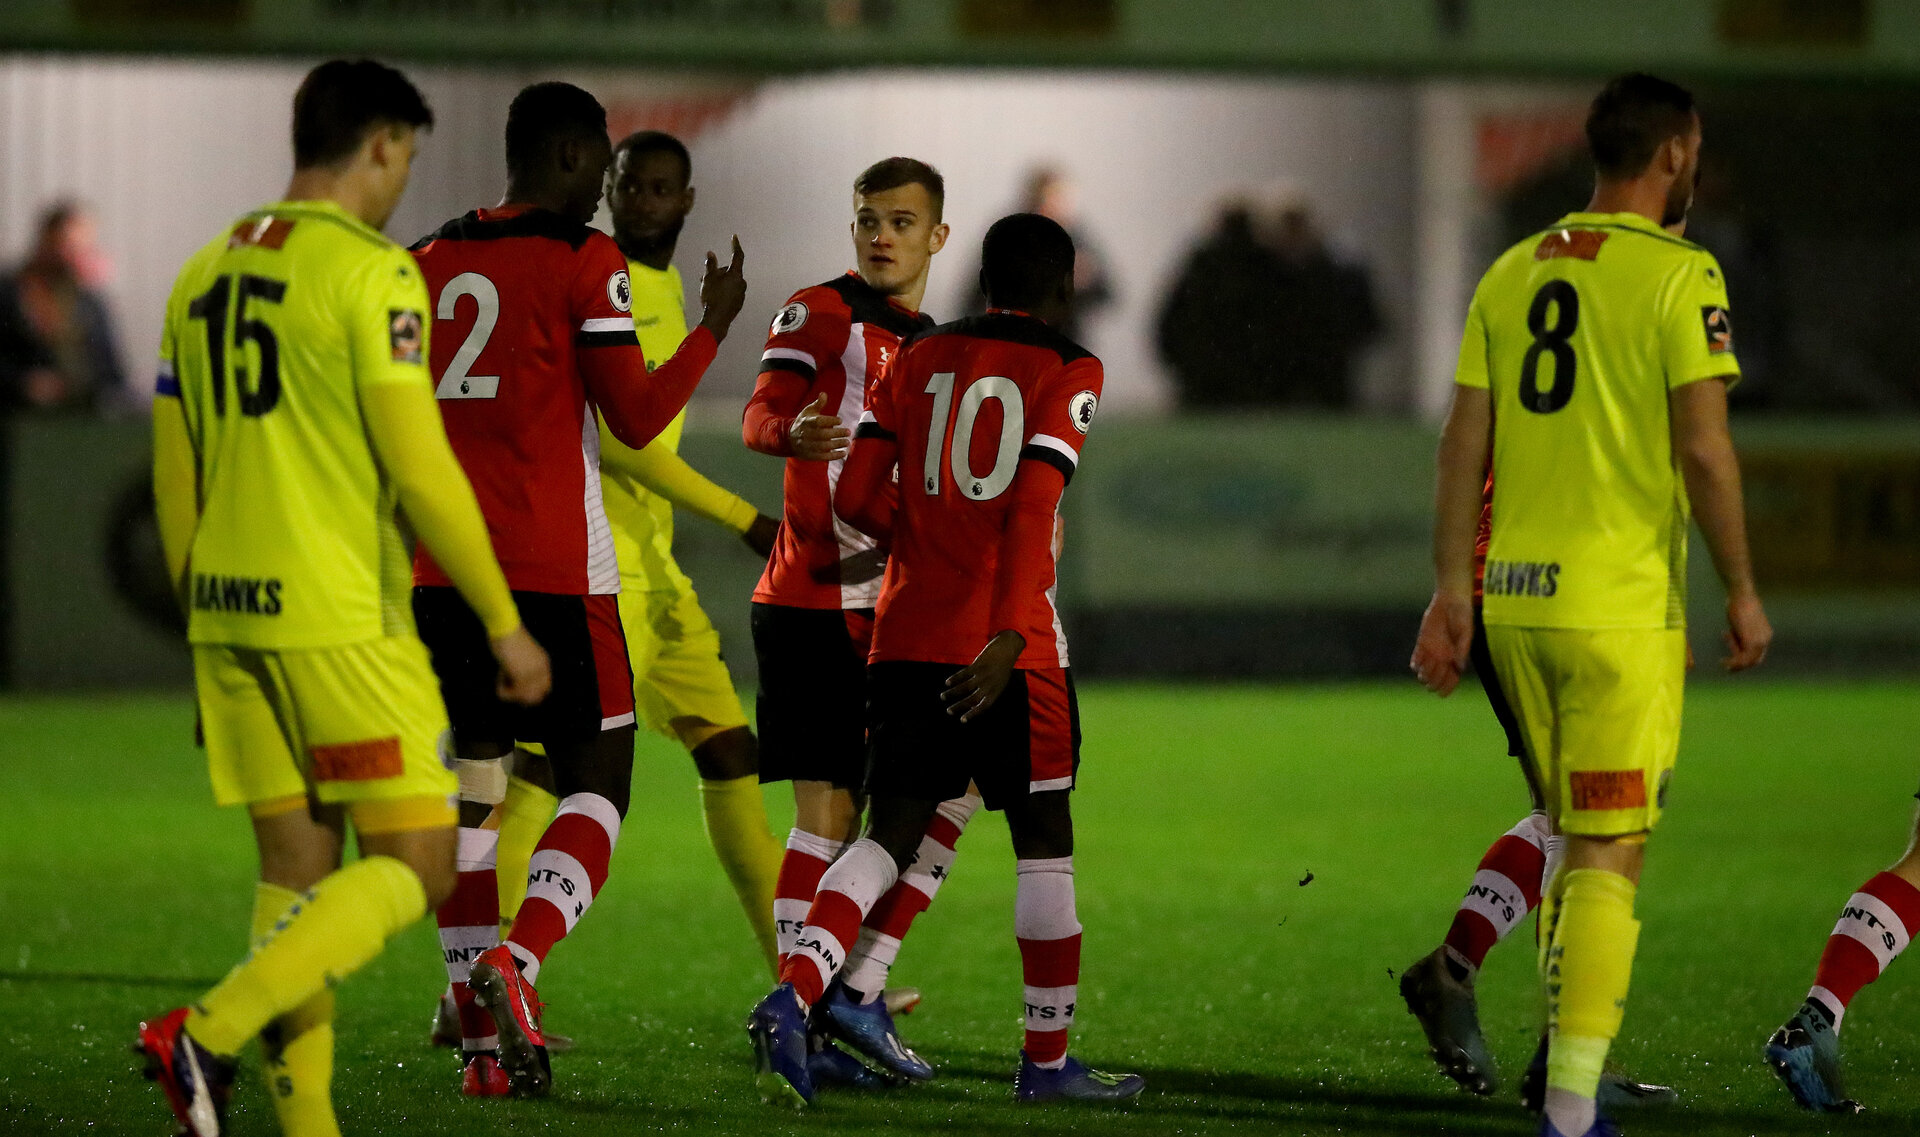 SOUTHAMPTON, ENGLAND - FEBRUARY 18: Kornelius Hansen of Southampton after opening the scoring during the Hampshire Senior Cup match between Southampton FC and Havant and Waterlooville at the Snows Stadium, Totton, on February 18, 2020 in Southampton, England. (Photo by Matt Watson/Southampton FC via Getty Images)